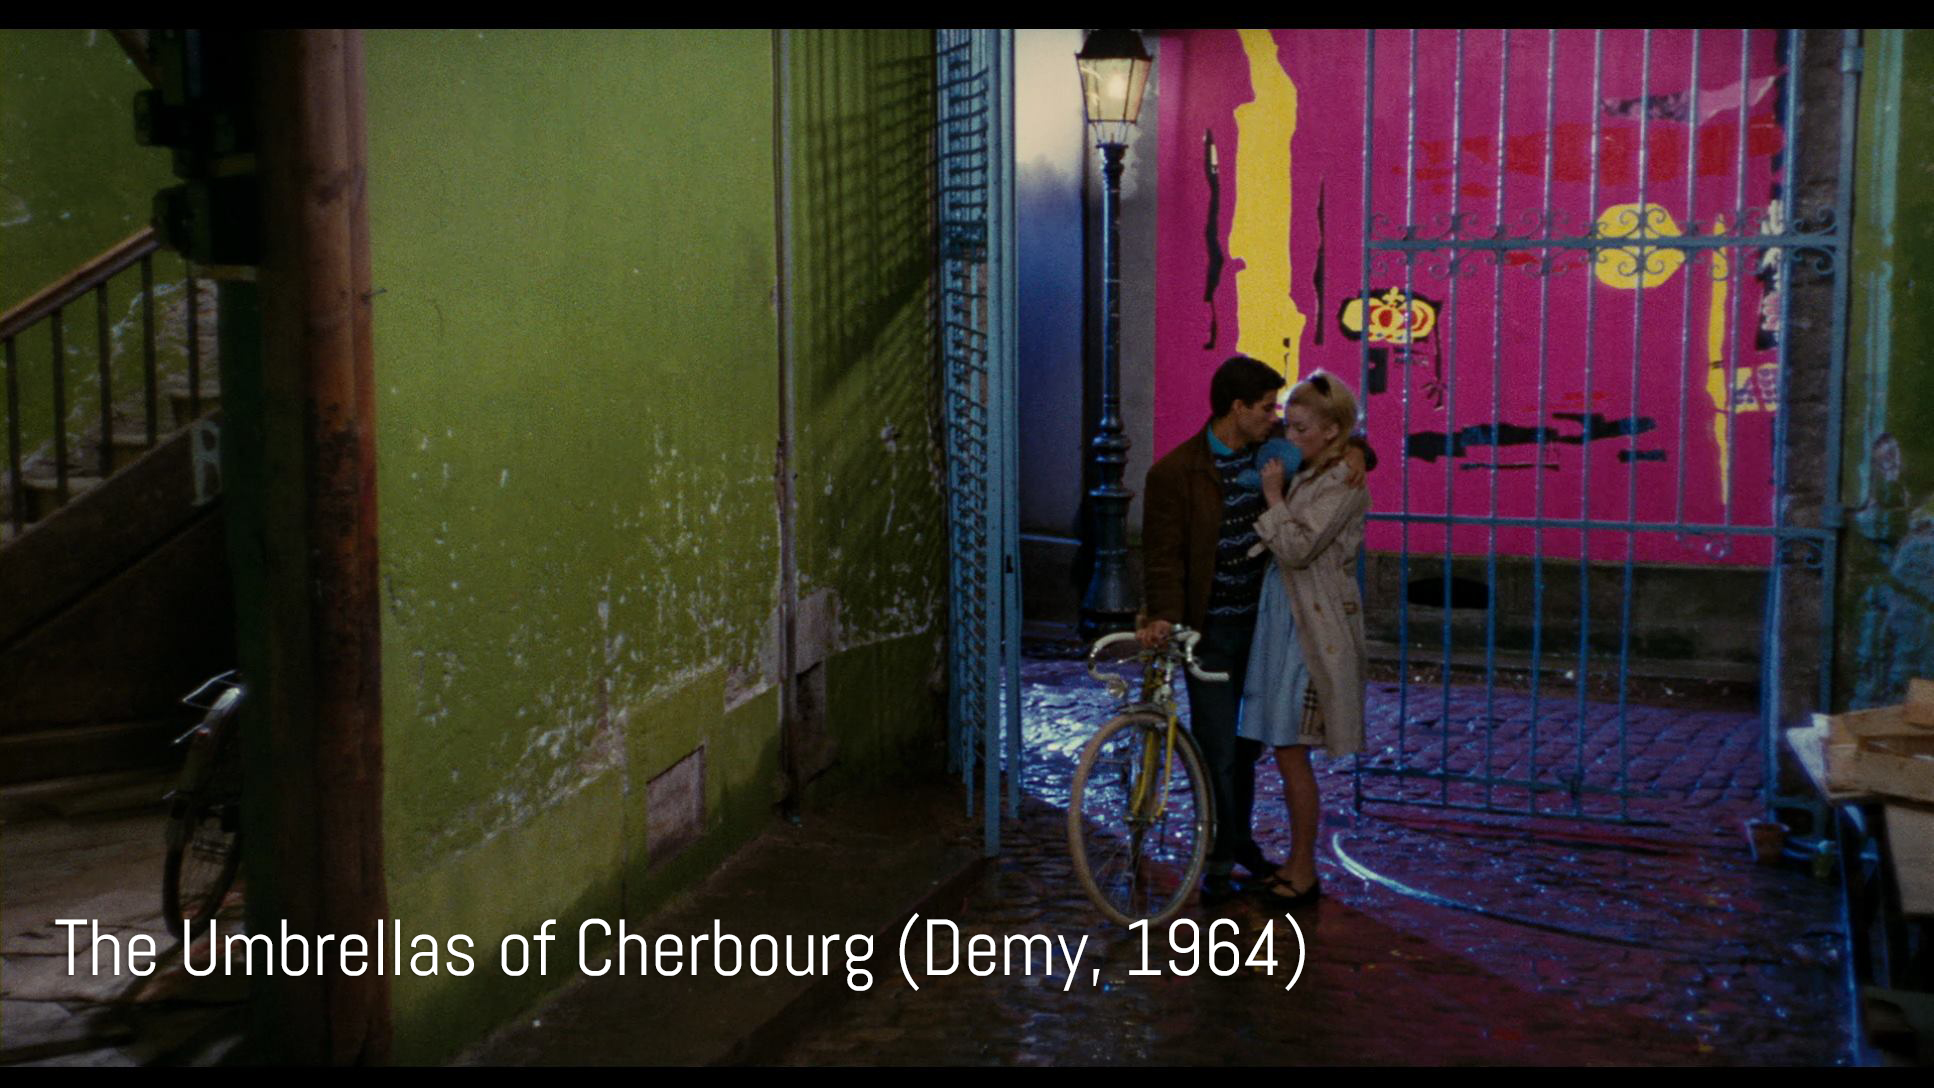 The Umbrellas of Cherbourg.jpg